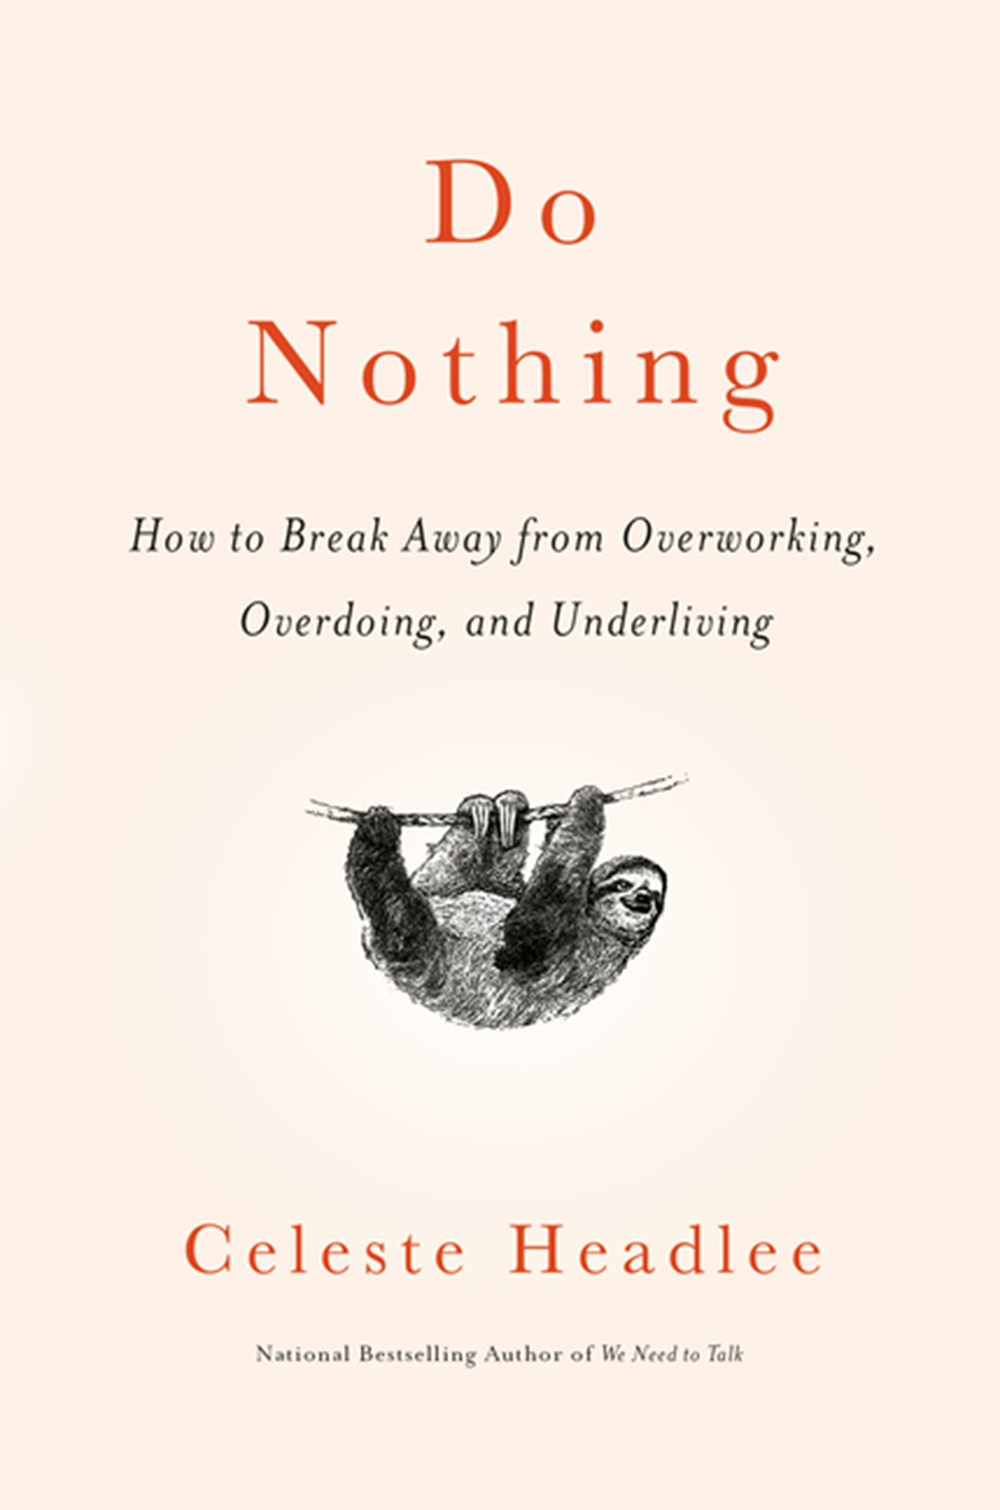 Do Nothing How to Break Away from Overworking, Overdoing, and Underliving